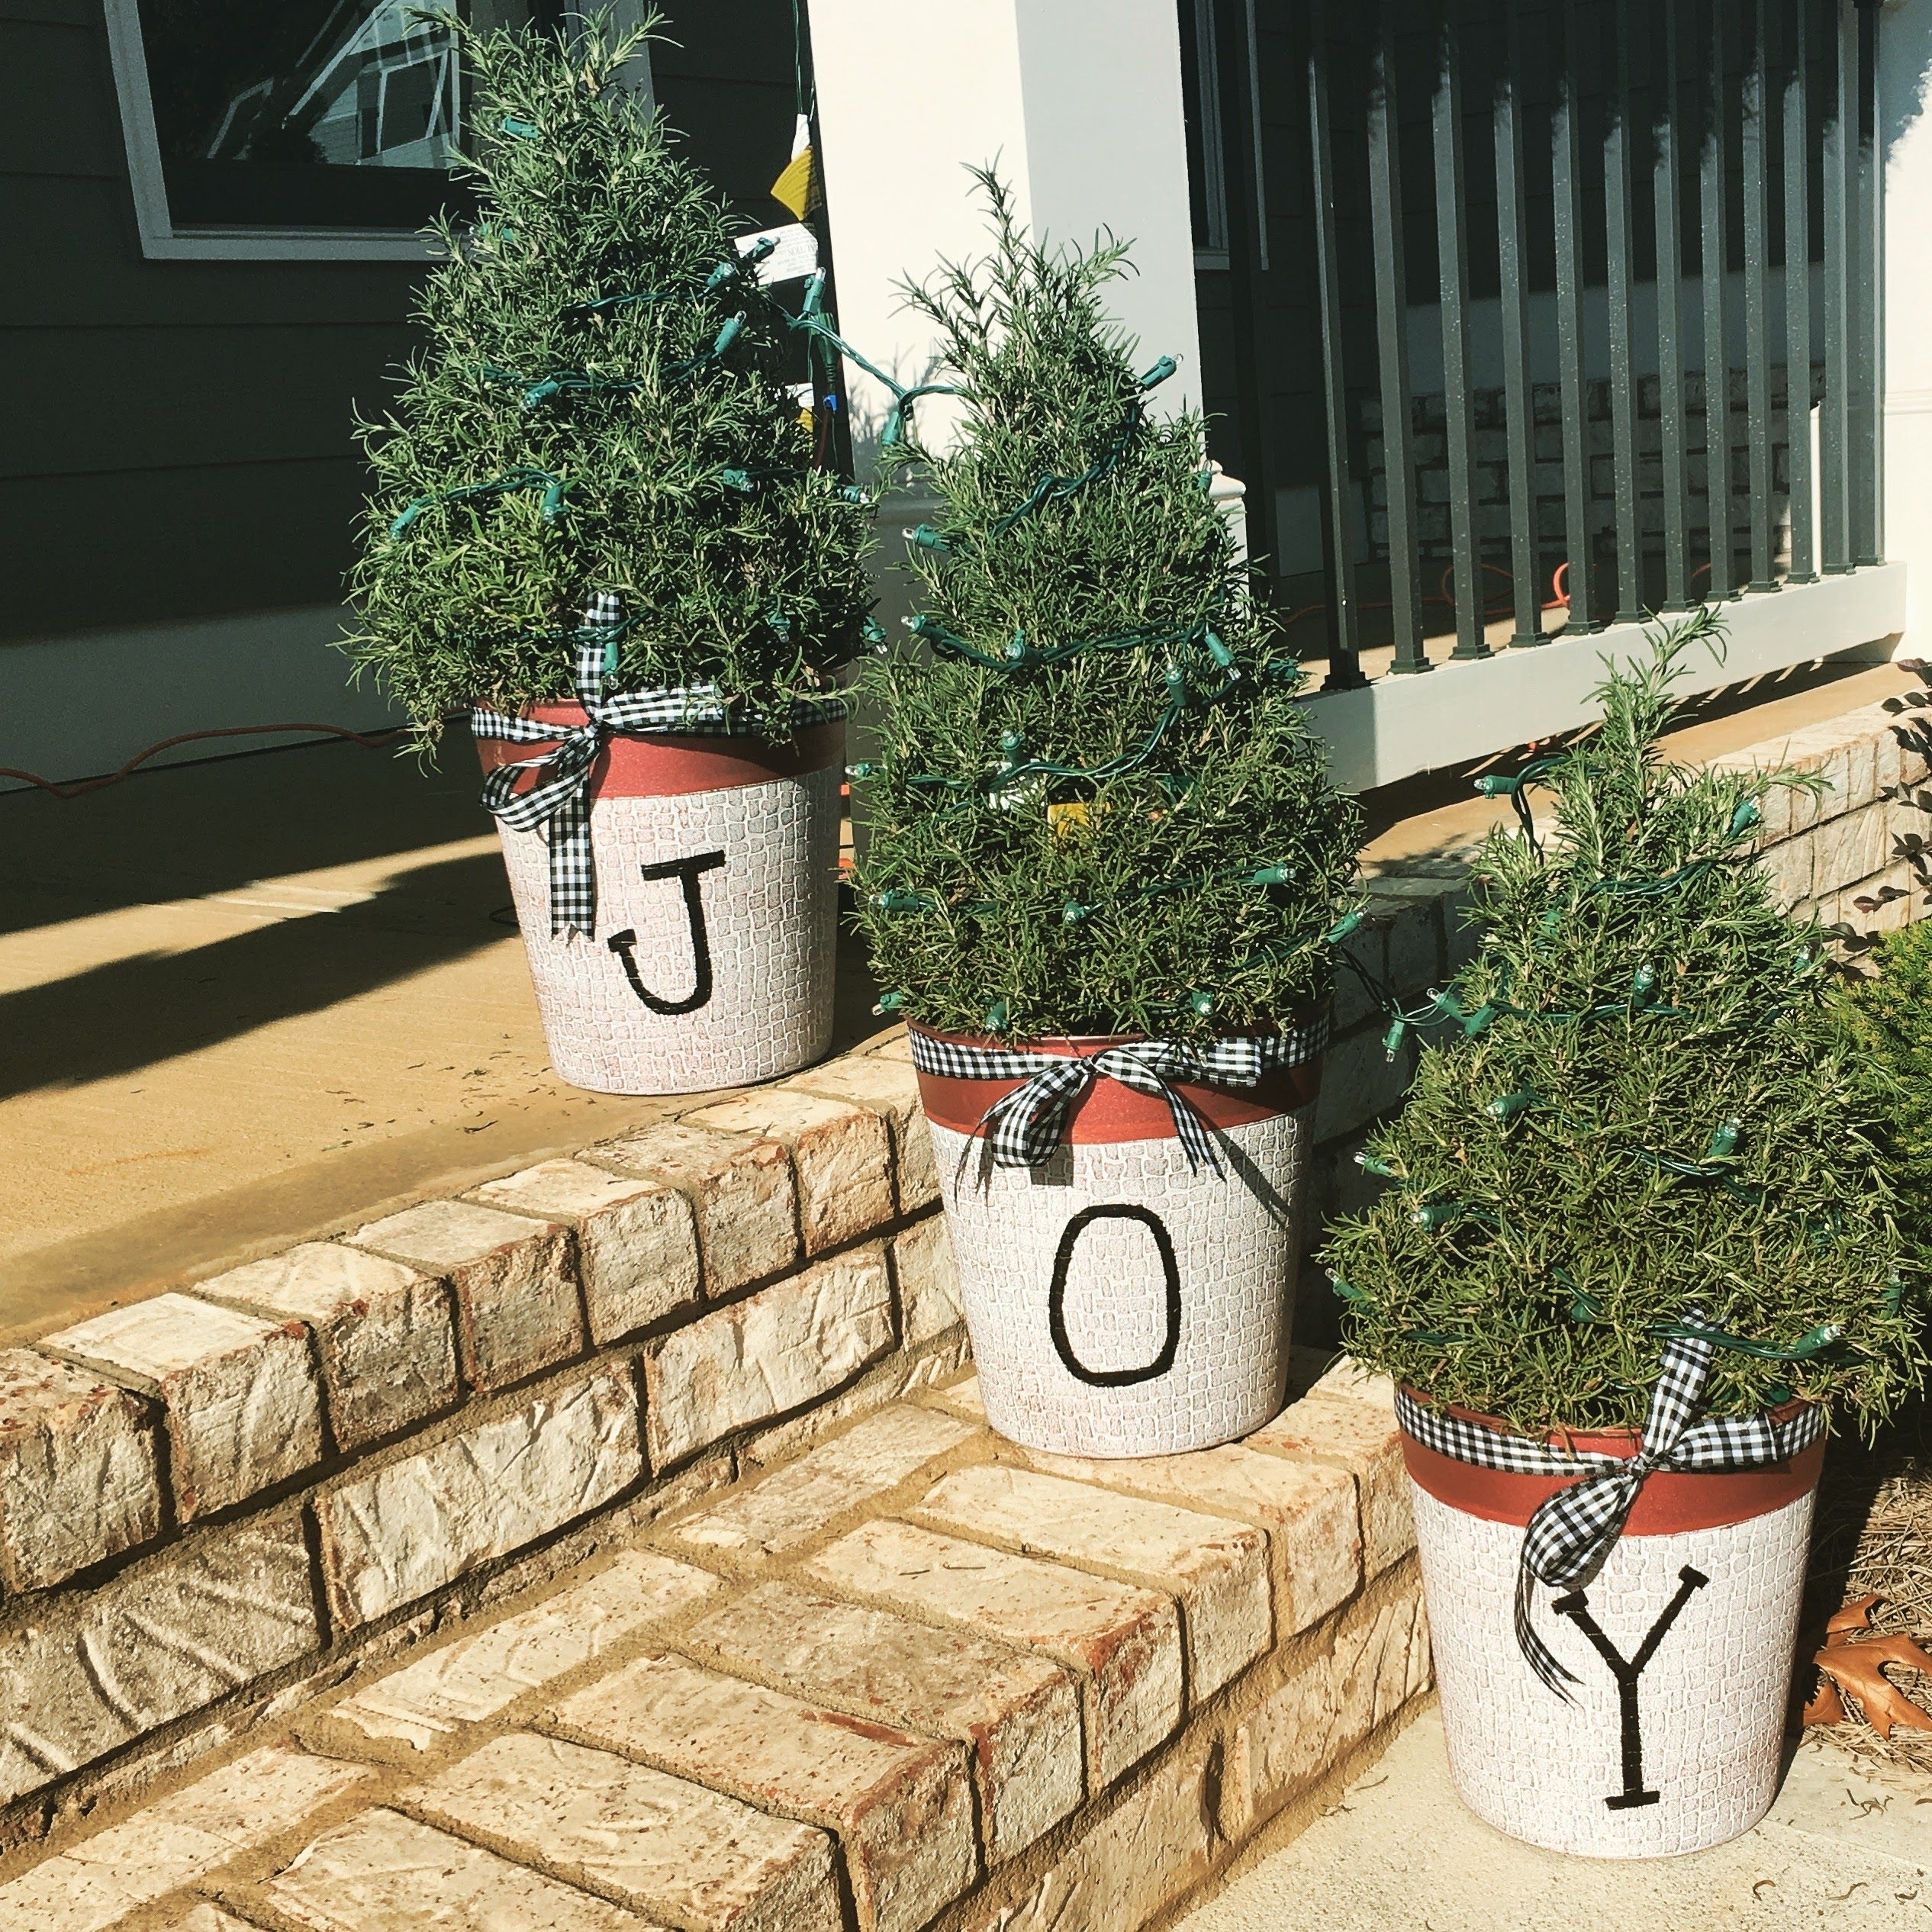 Patio rosemary trees for christmas 2016 inspired by laura